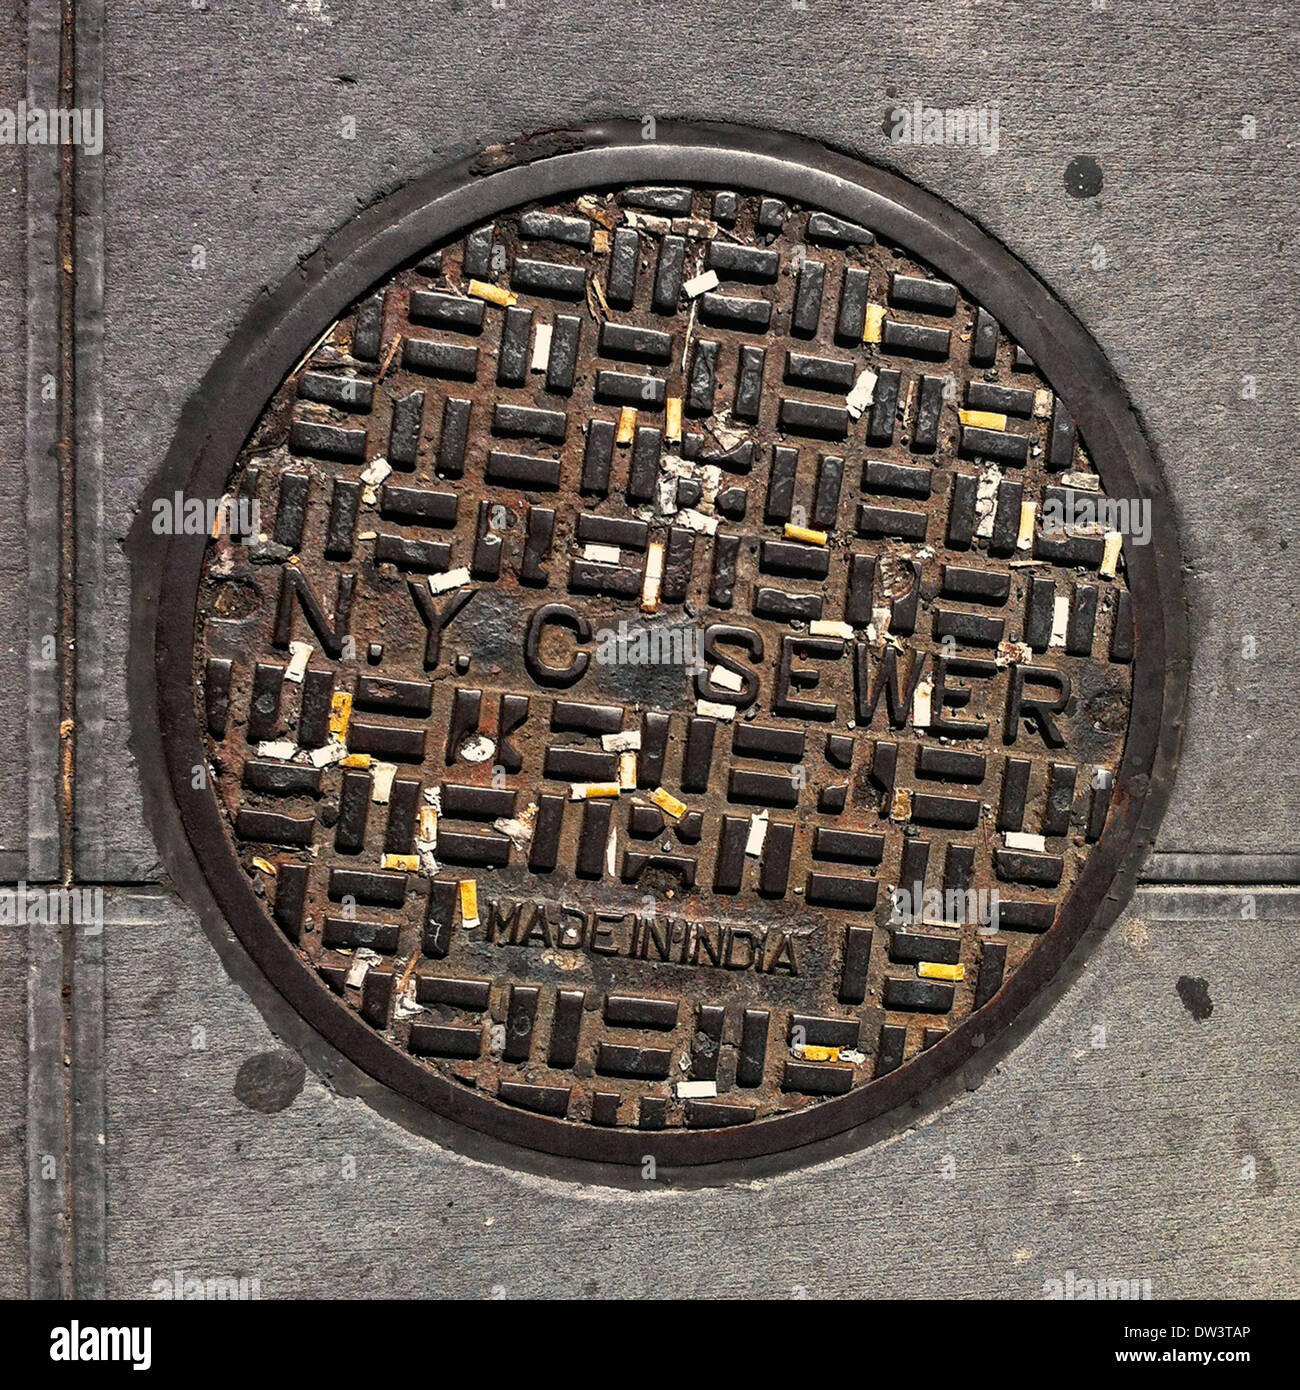 Various cigarette butts set in the grooves of an NYC sewer lid on 6th Avenue in Manhattan. - Stock Image